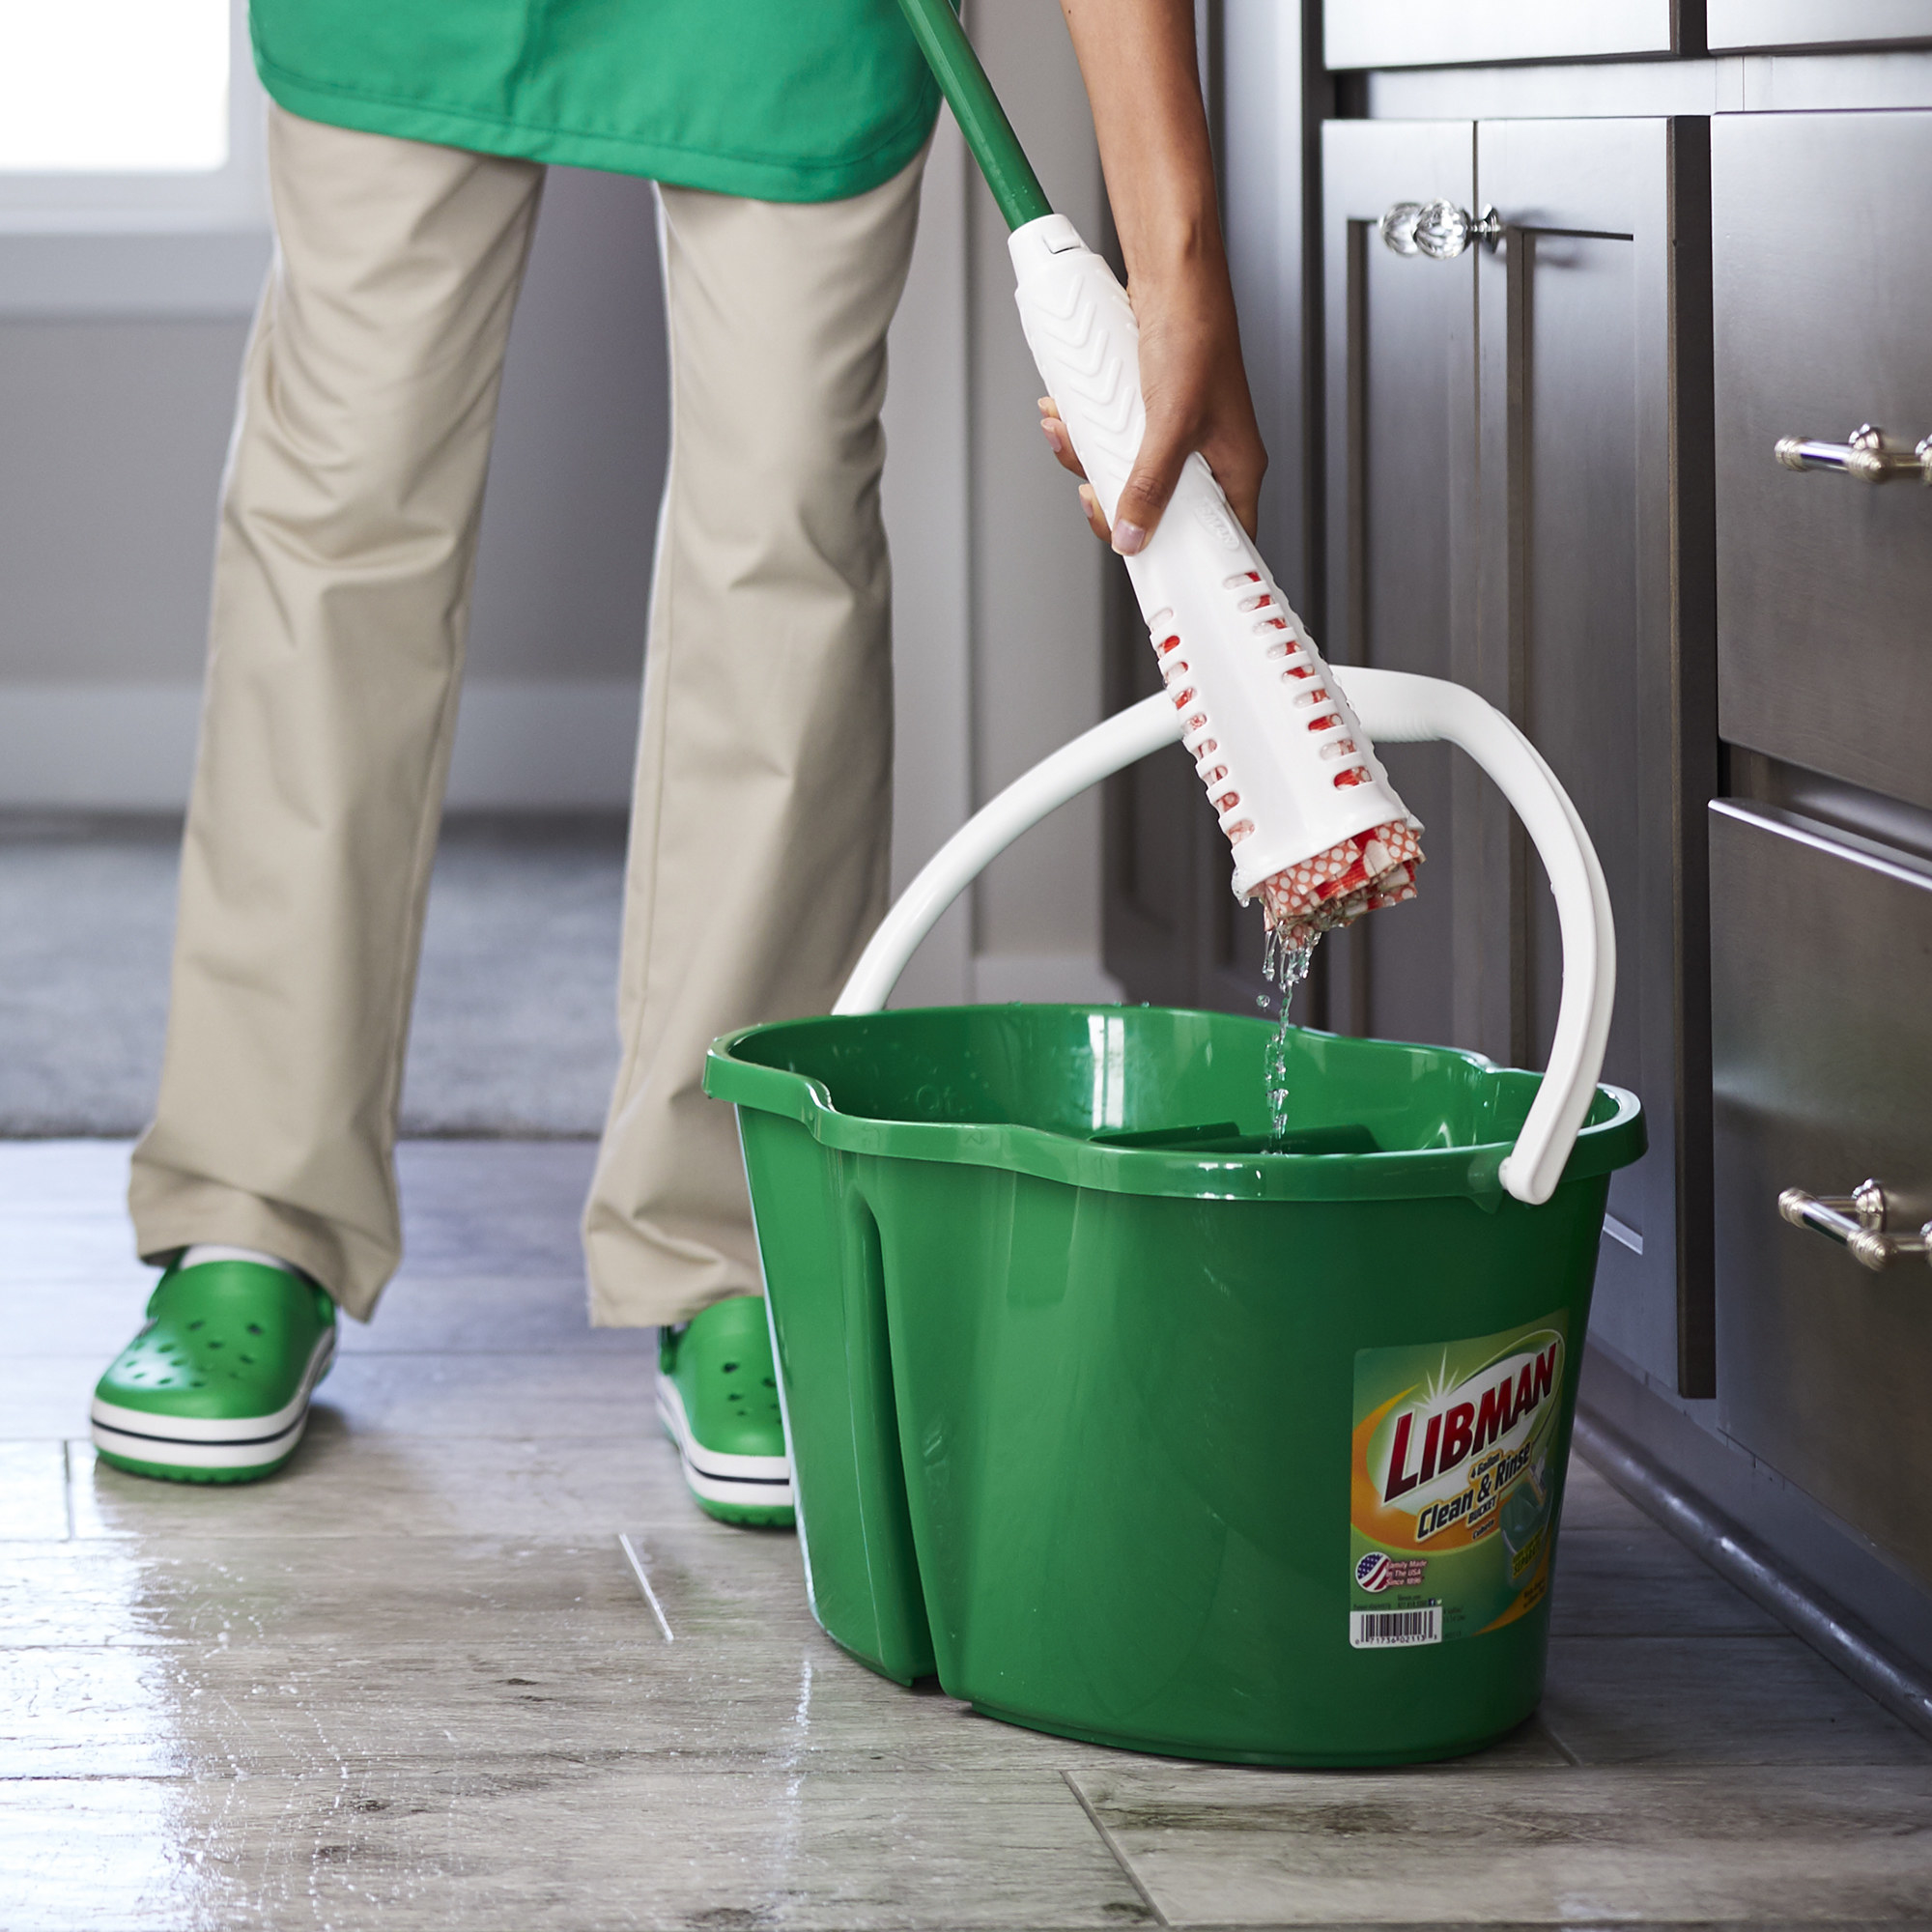 A model using the built-in wringer to remove some of the water from a microfiber mop